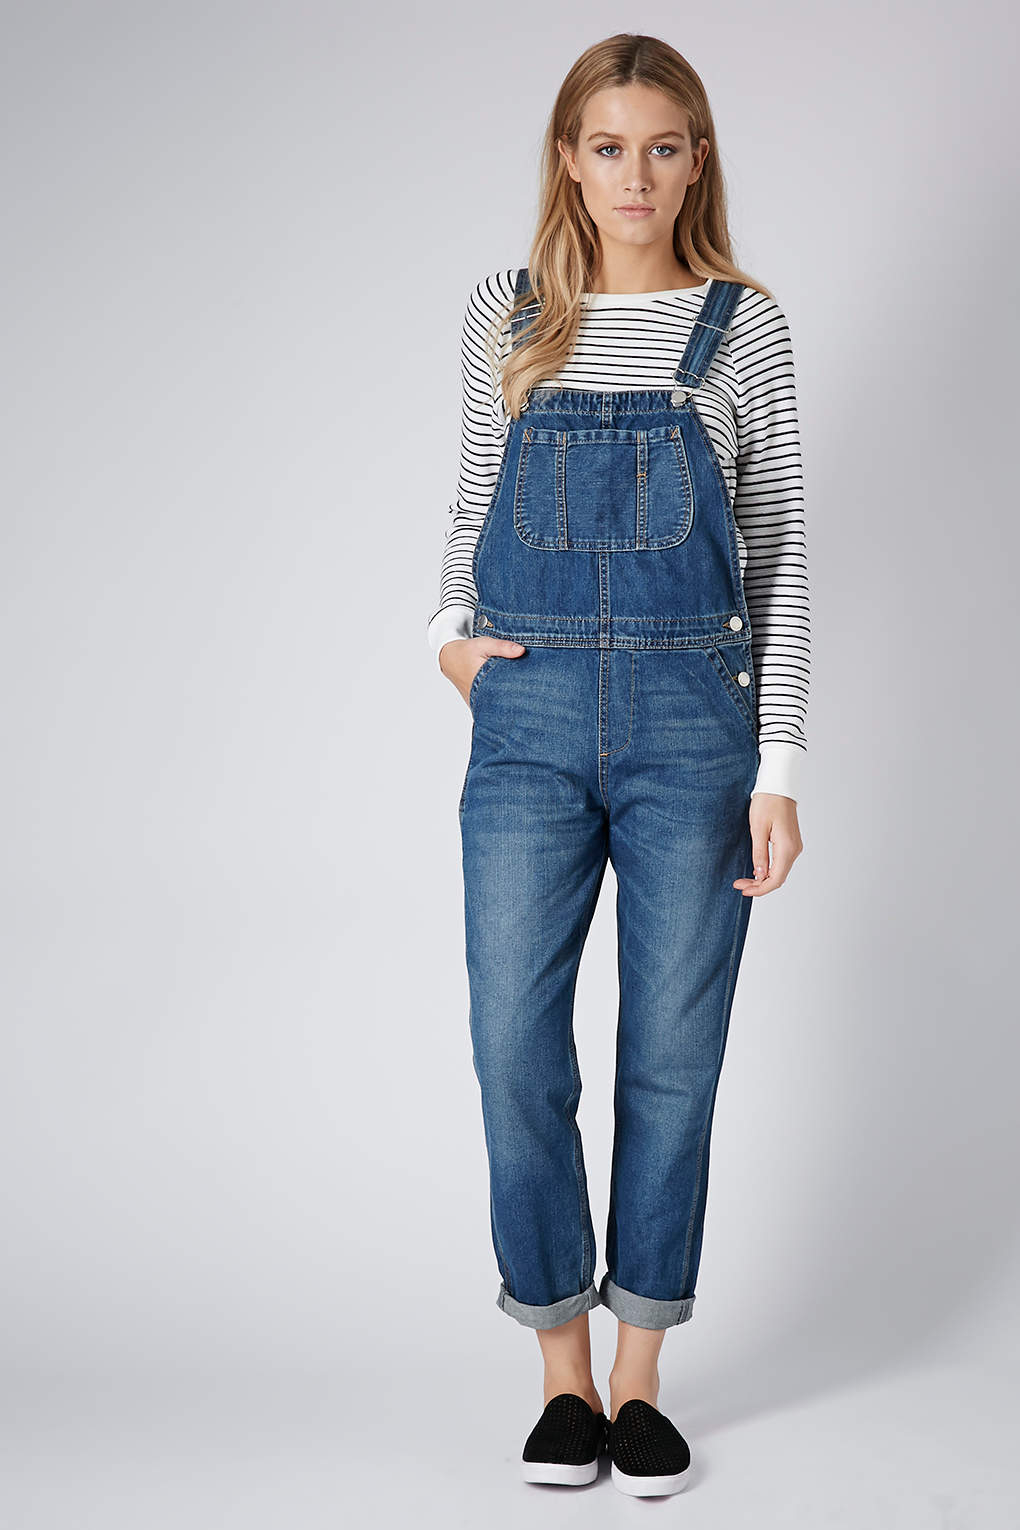 Lyst - Topshop Moto Denim Long Leg Dungarees in Blue